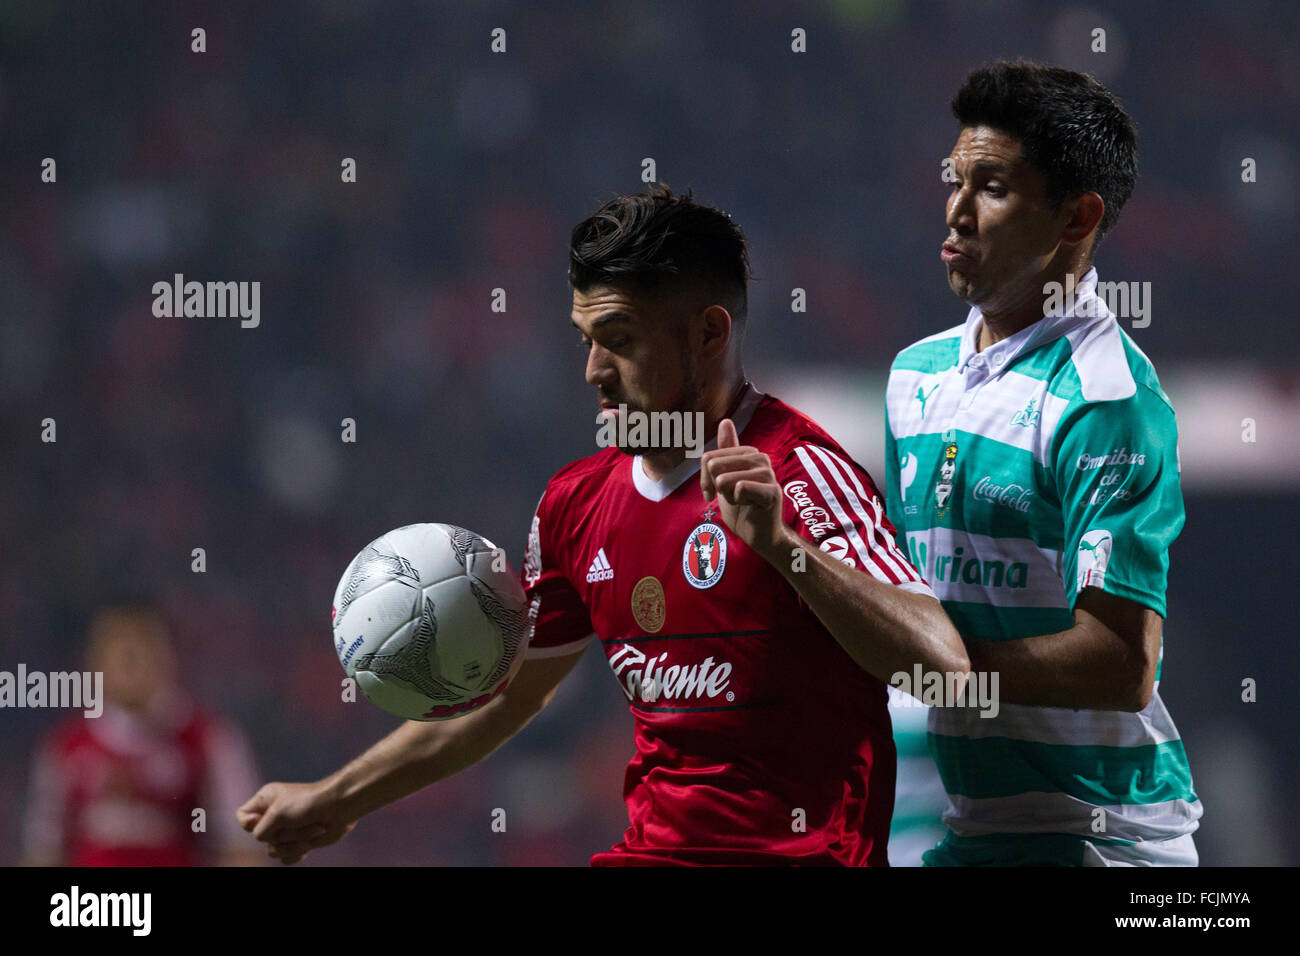 Tijuana, Mexico. 22nd Jan, 2016. Xolos' Henry Martin (L) vies with Jesus Molina of Santos during their match - Stock Image